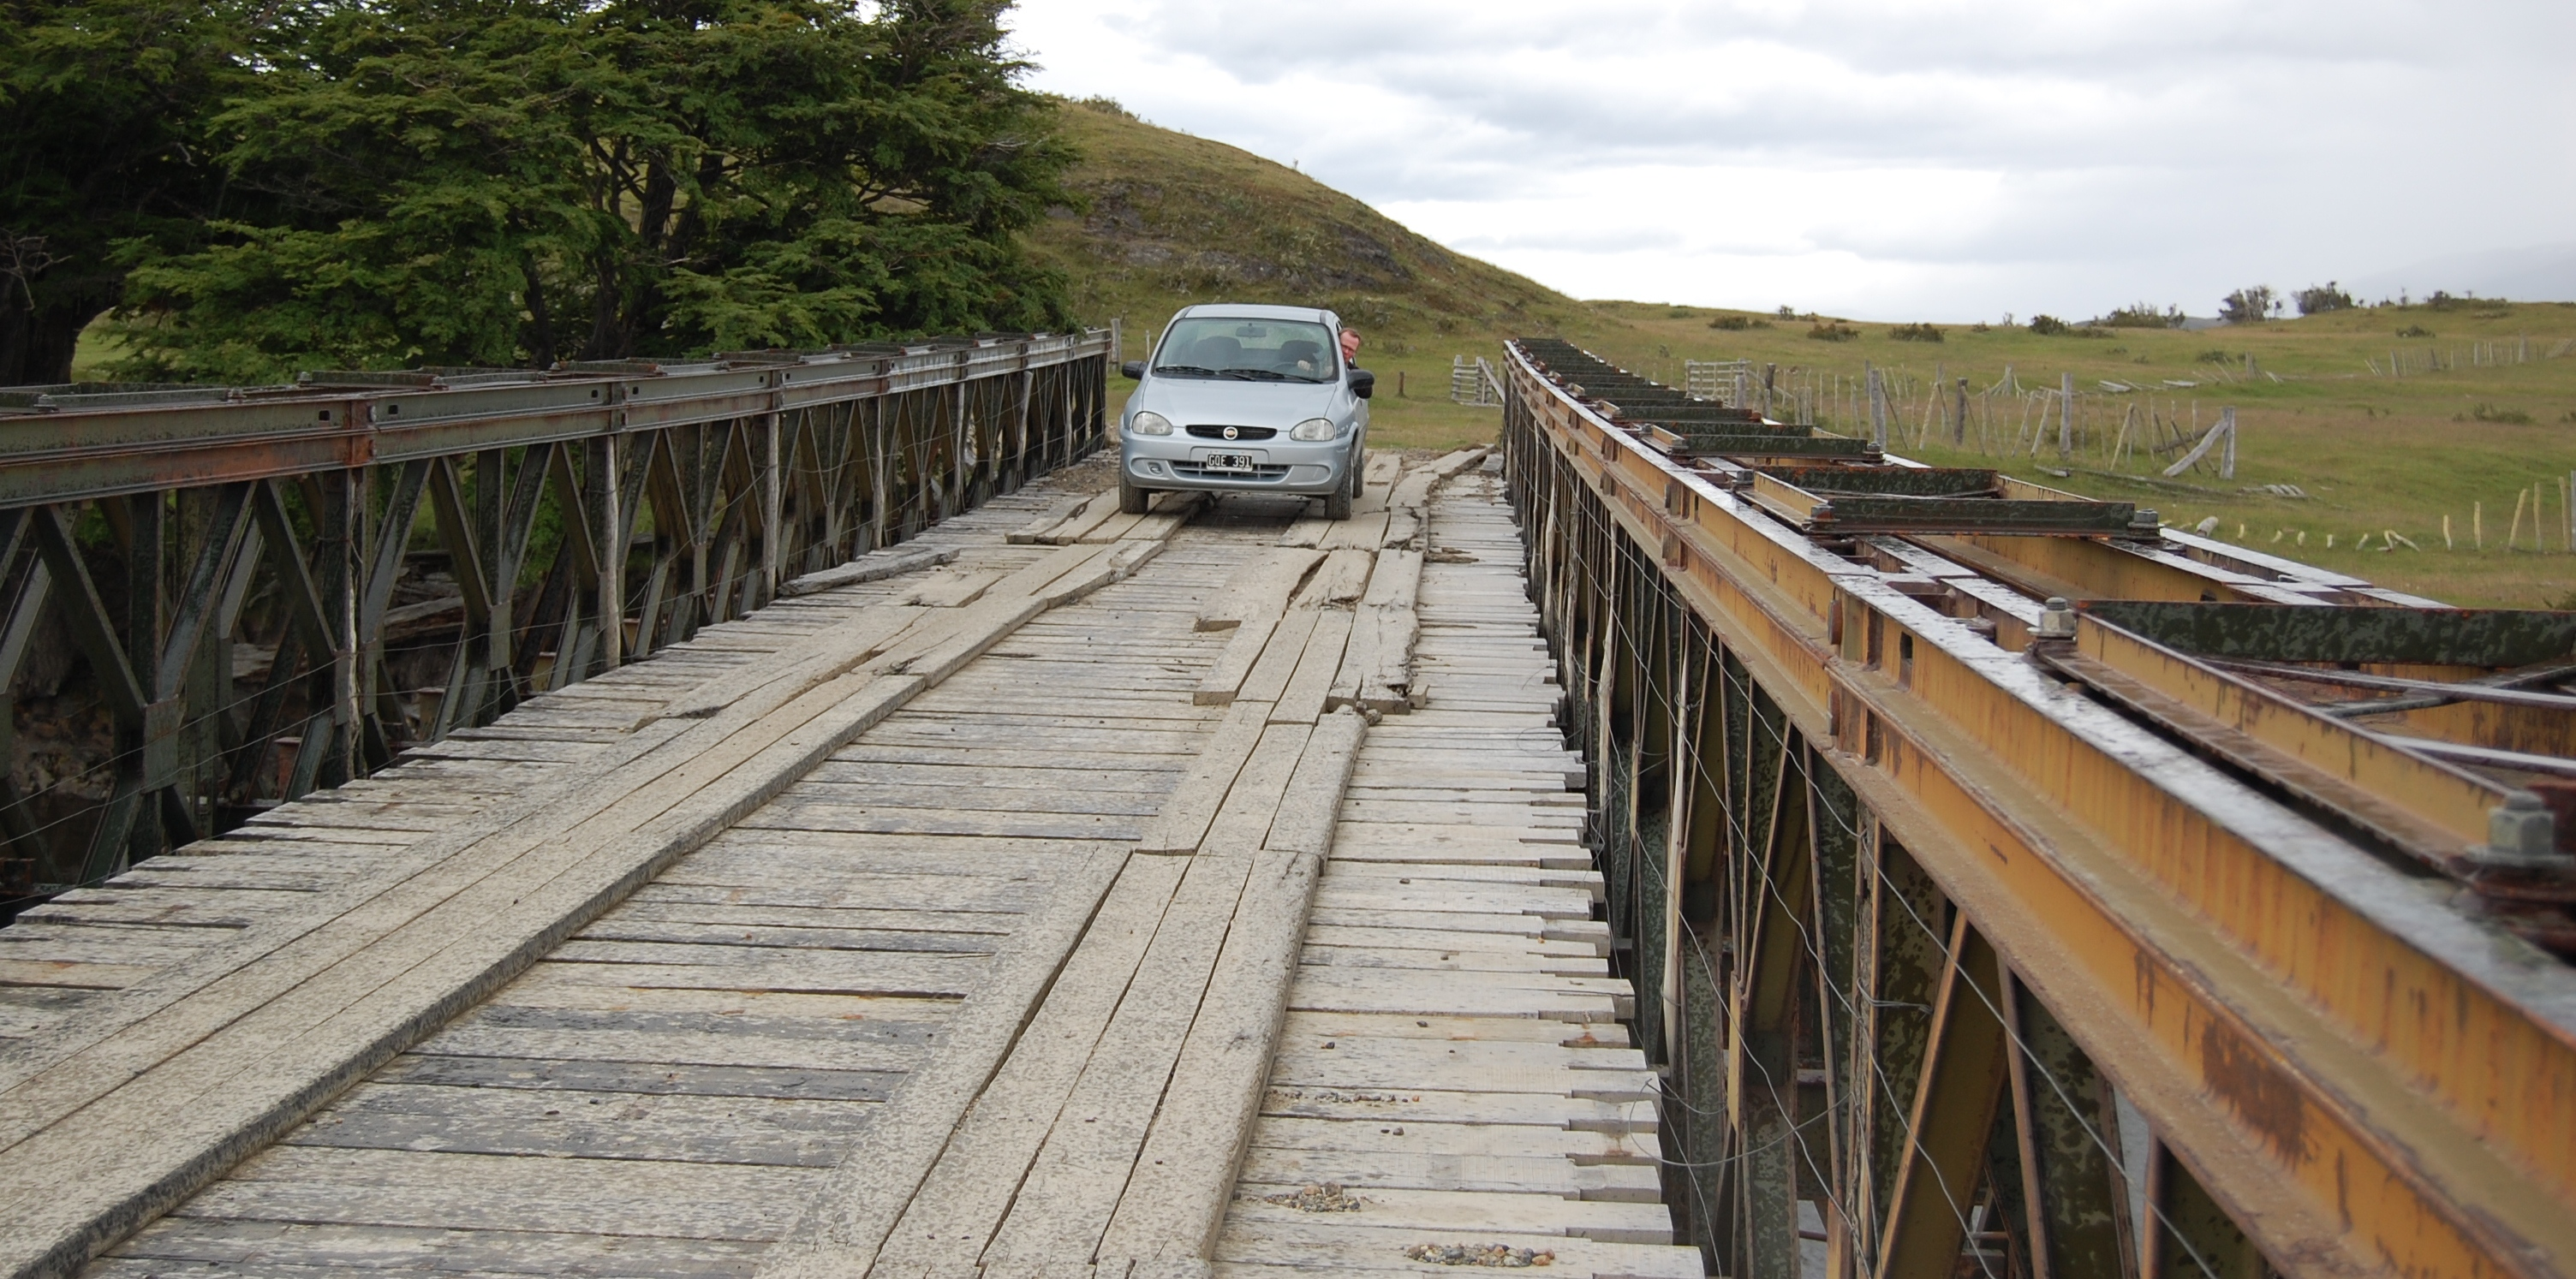 A wooden bridge, with a small car passing precariously over it.